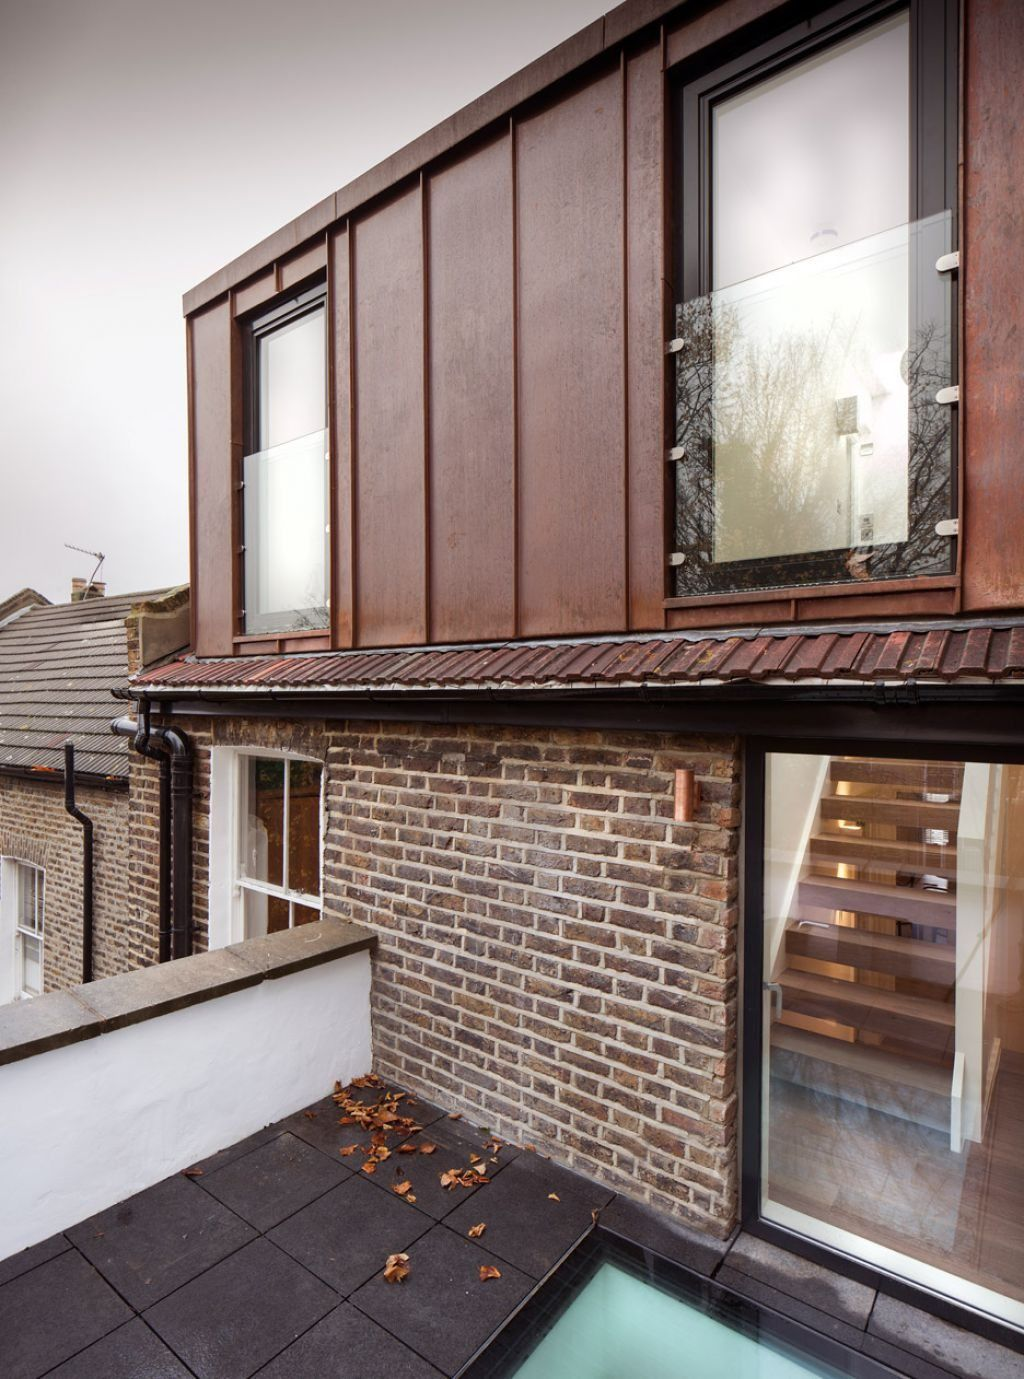 Copper Exterior Wall Cladding For A House Exterior Wall Cladding London House House Cladding